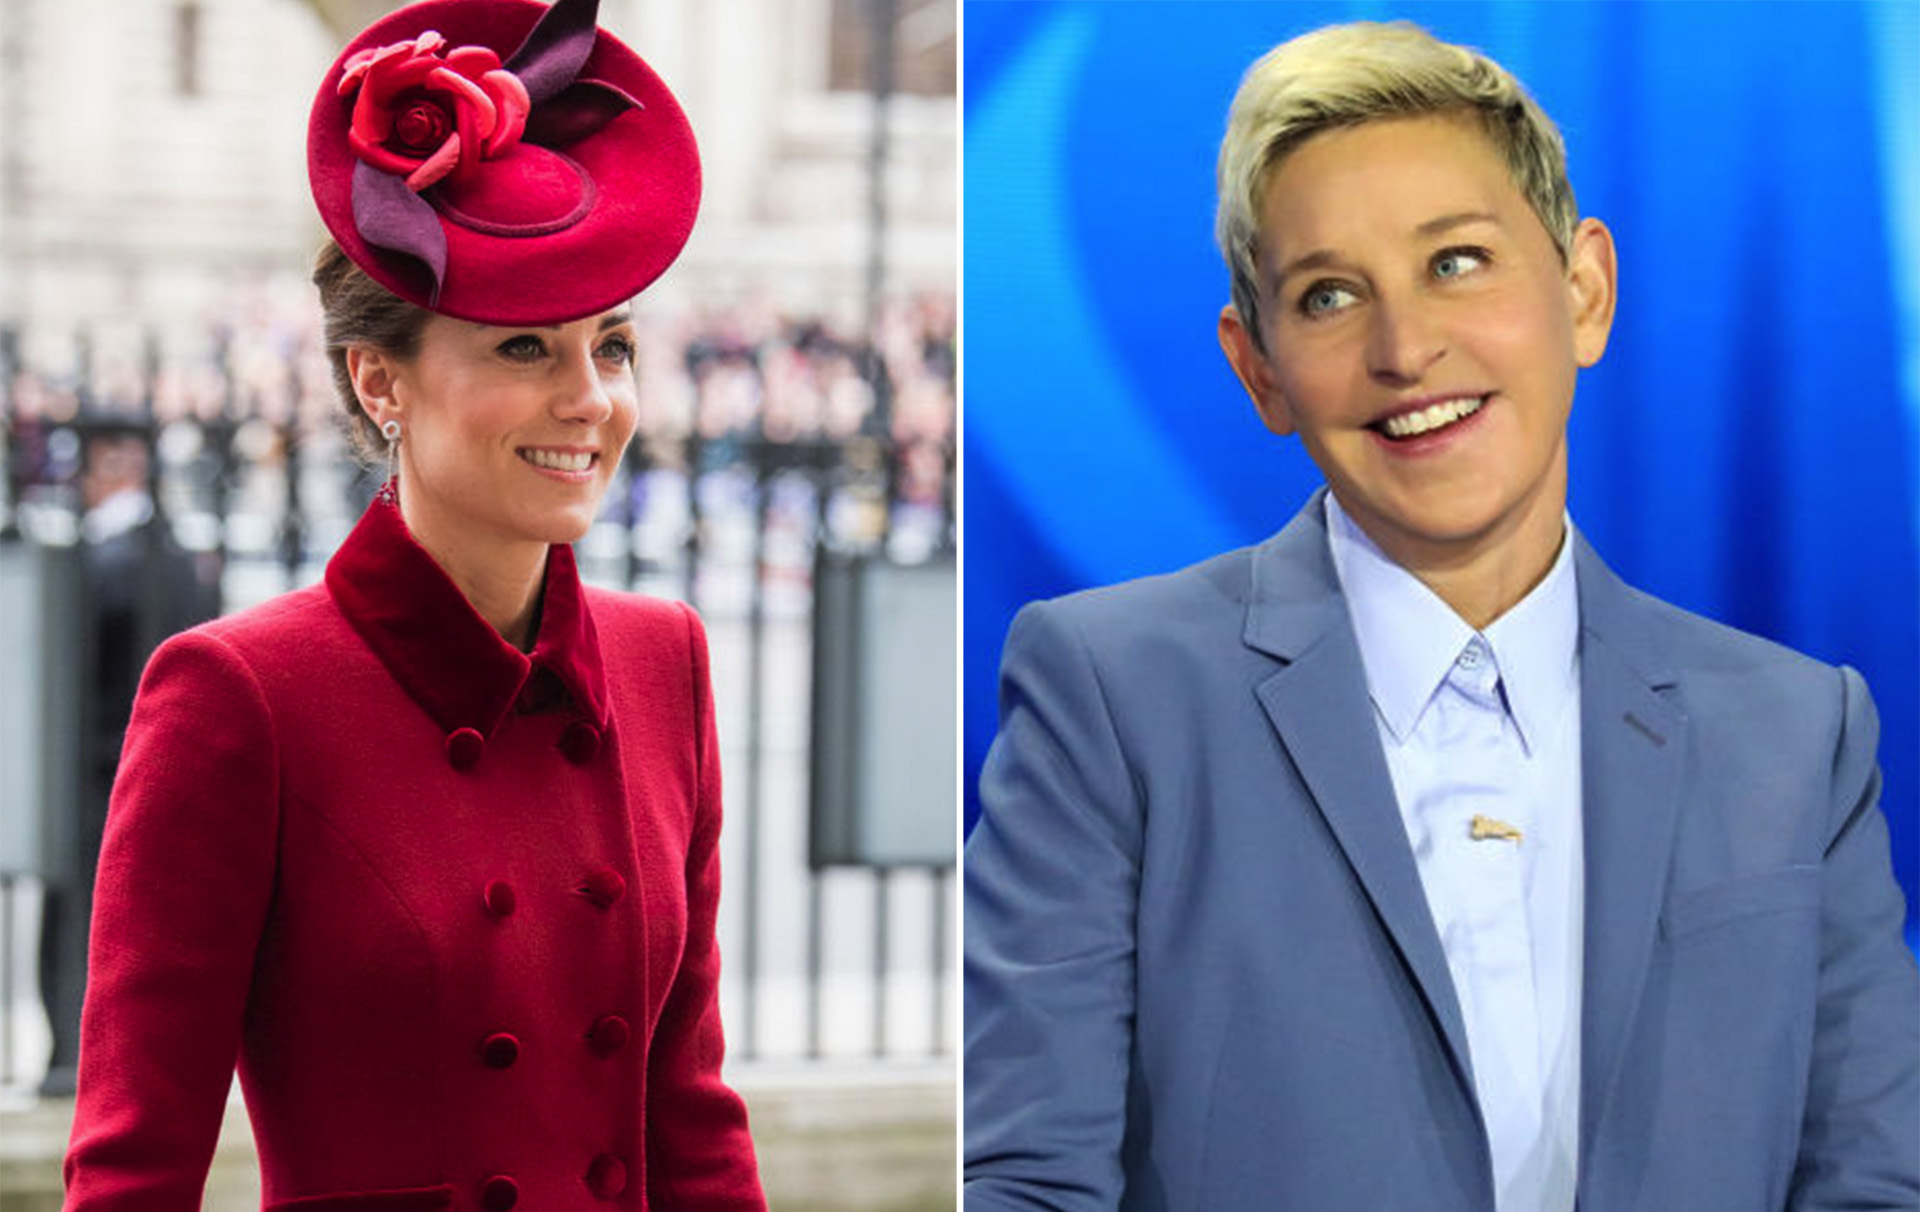 Celebrities related to the royal family